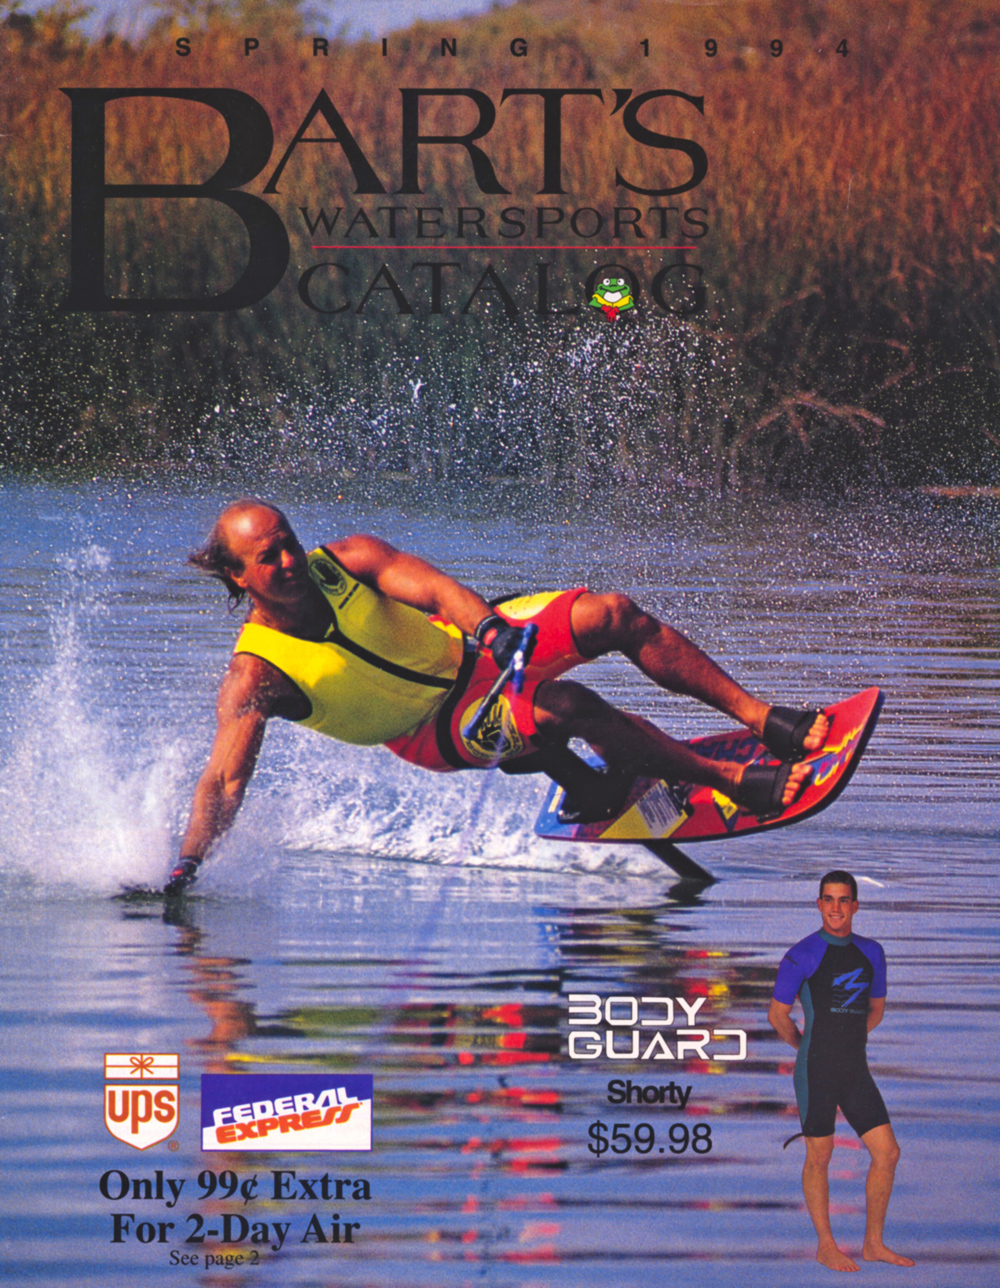 adventures-water-skiing-hydrofoiling-1994-mike-mack-barts-cover